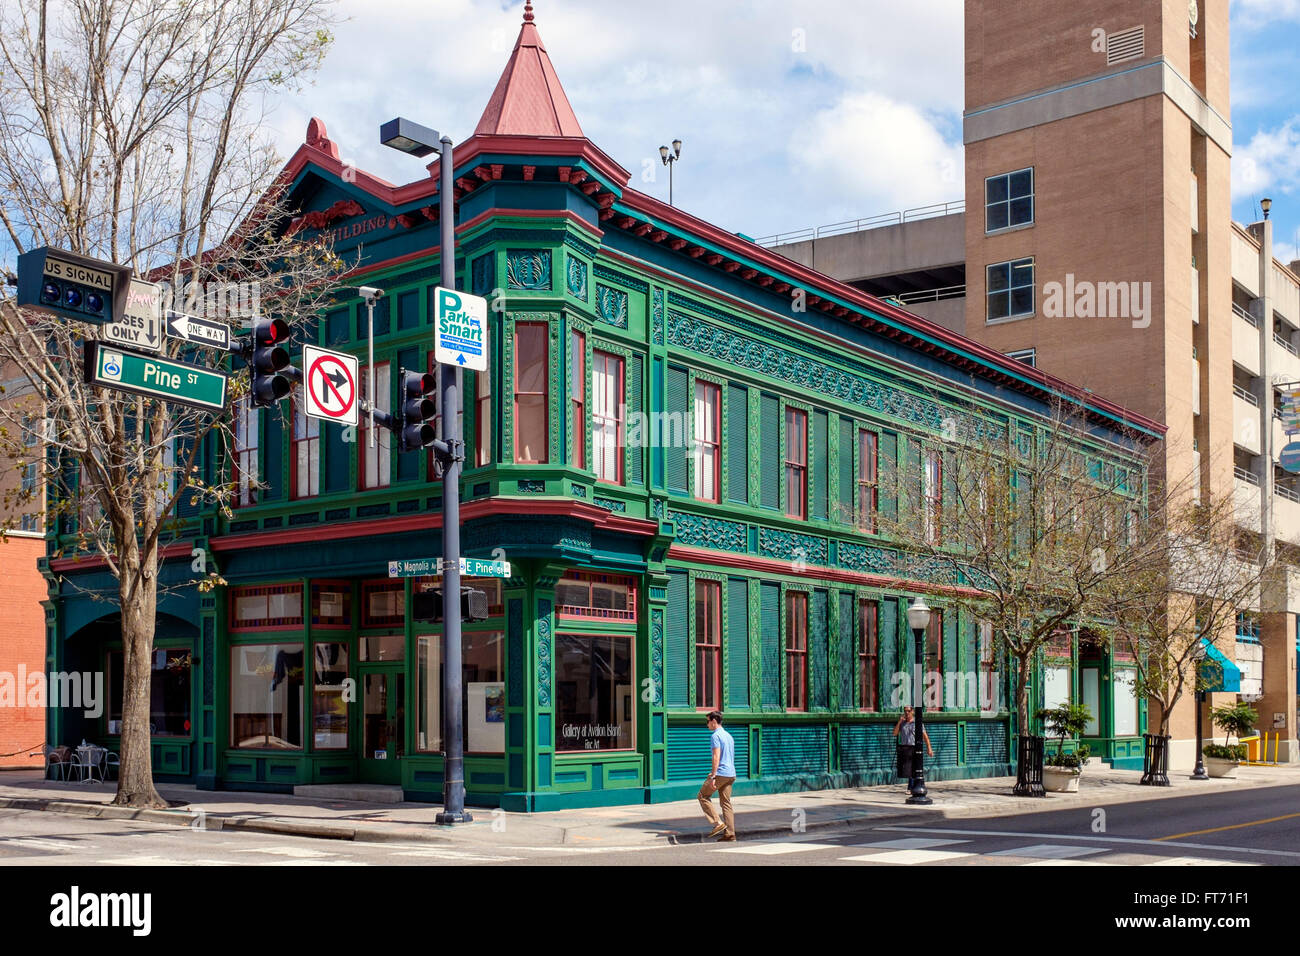 Traditional architecture of the building known as the Gallery at Avelon Island, Downtown Orlando, Florida, America - Stock Image